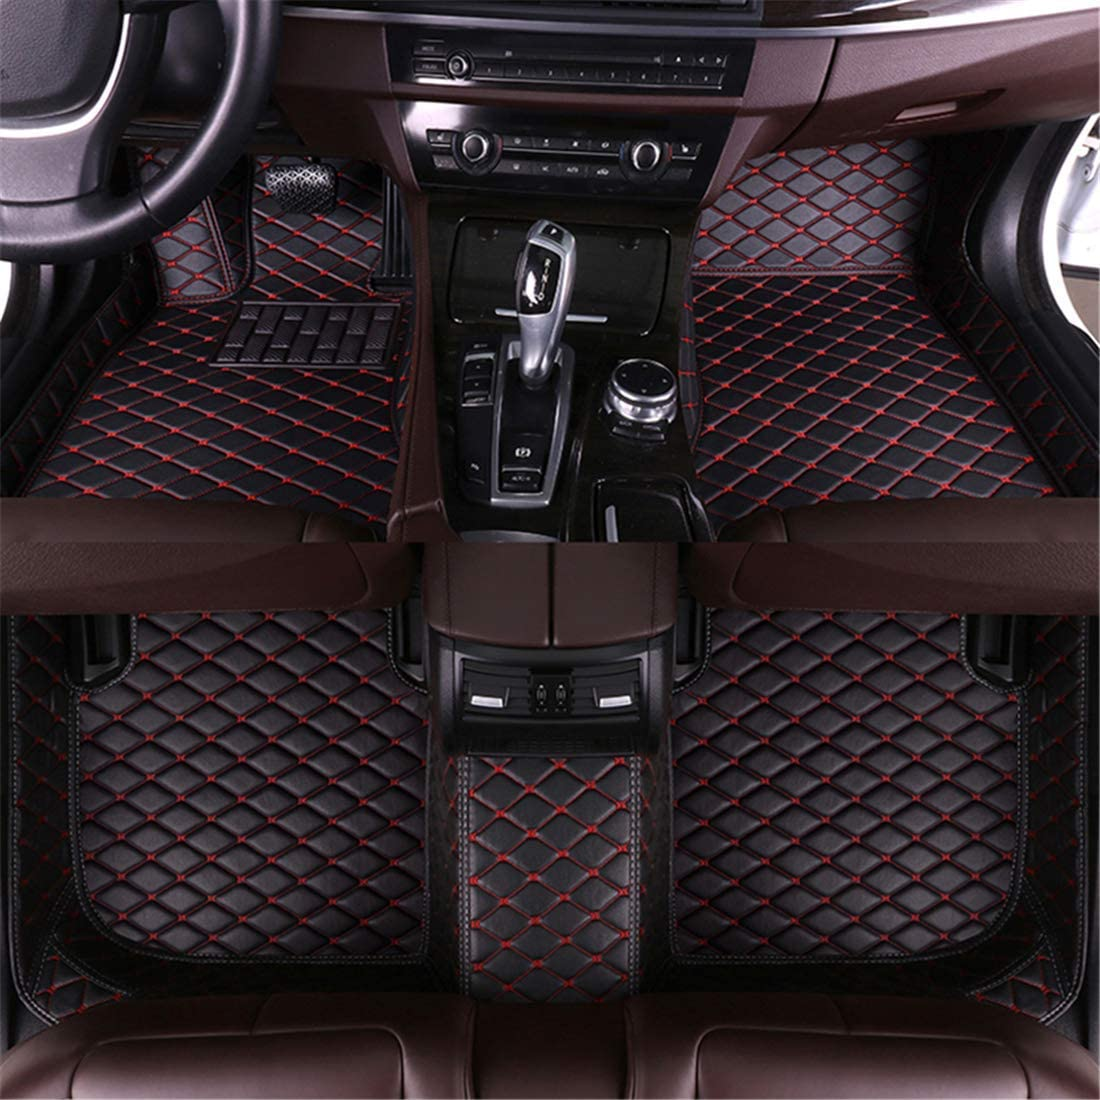 Muchkey car Floor Mats fit for Nissan Rogue 5seat 2014-2019 Full Coverage All Weather Protection Non-Slip Leather Floor Liners Black-Red